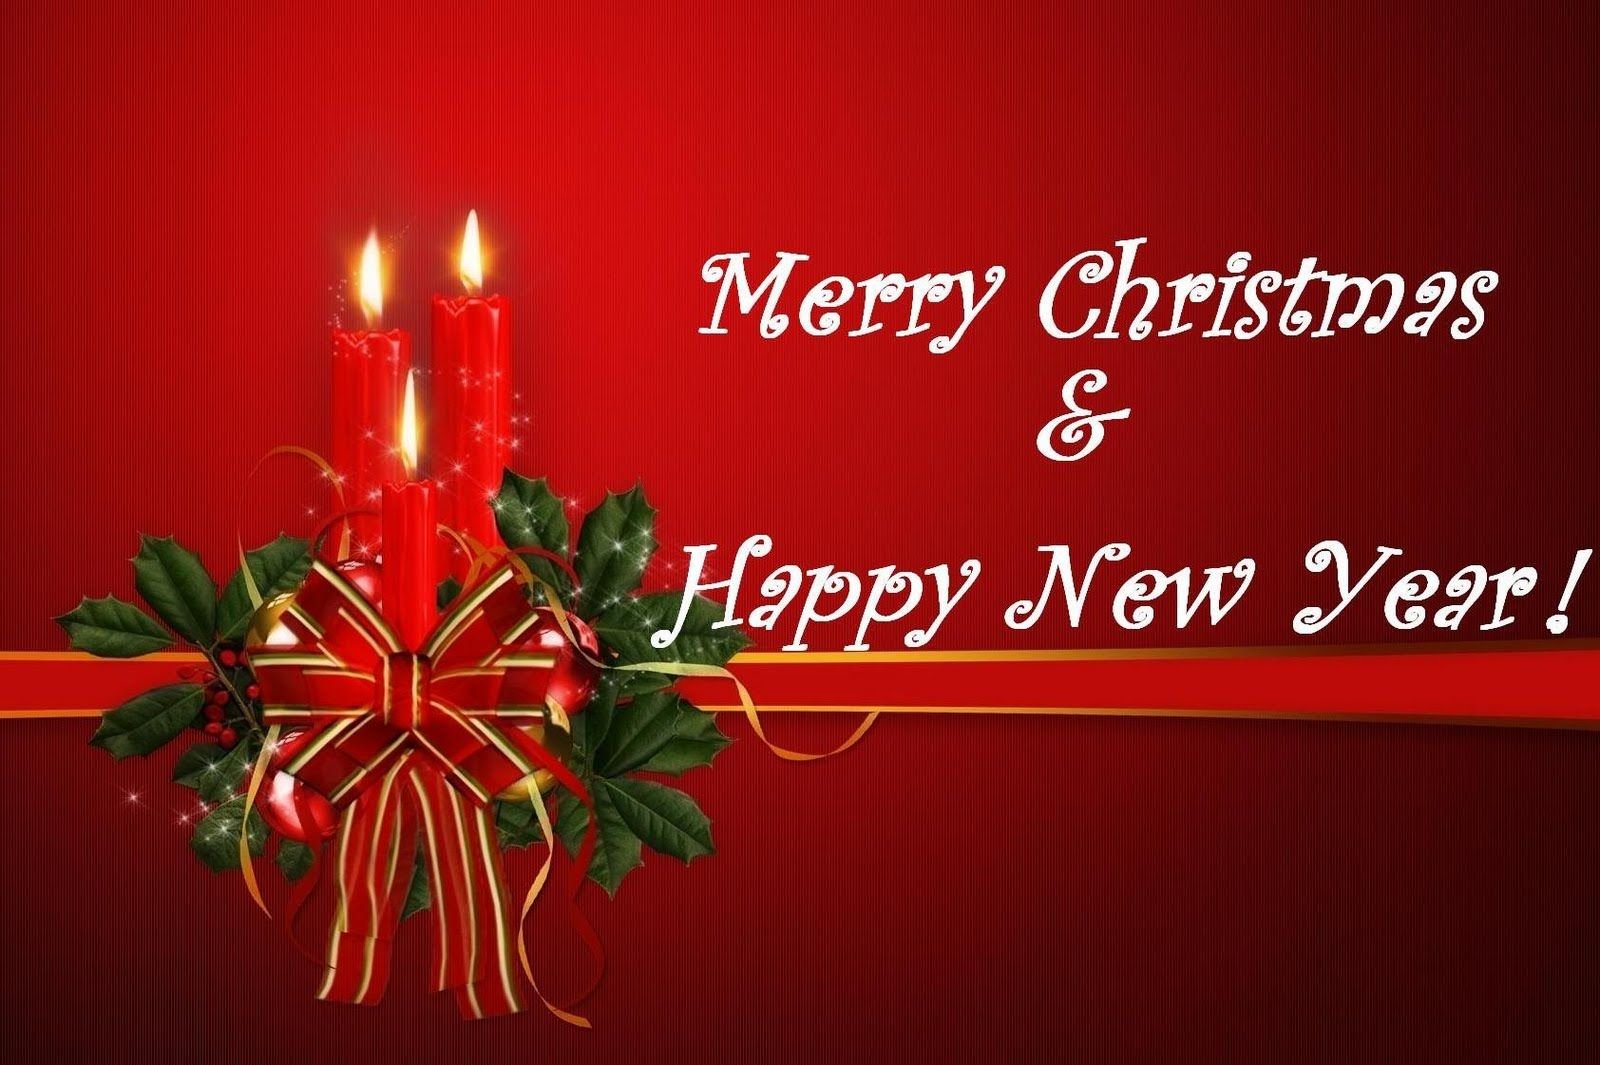 Happy marry christmas happy new year to all by st ajittech merry christmas 2015 greeting cards for friends family and loved ones kristyandbryce Choice Image